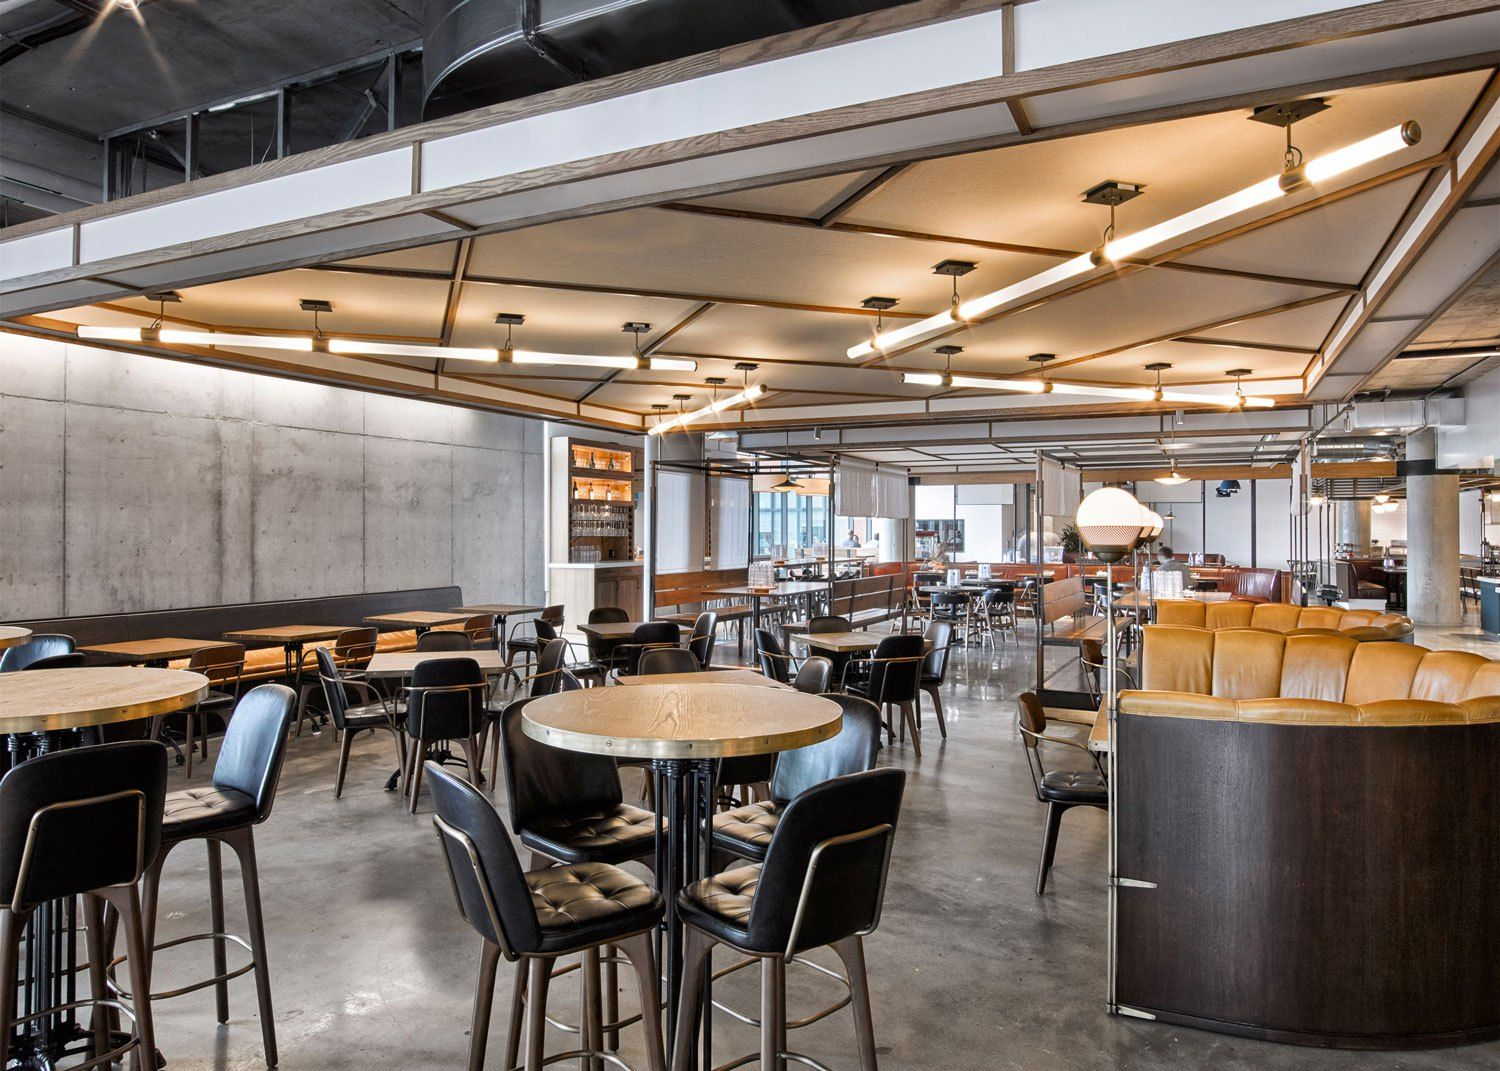 avroko designs a workplace cafeteria for dropbox. | cafe